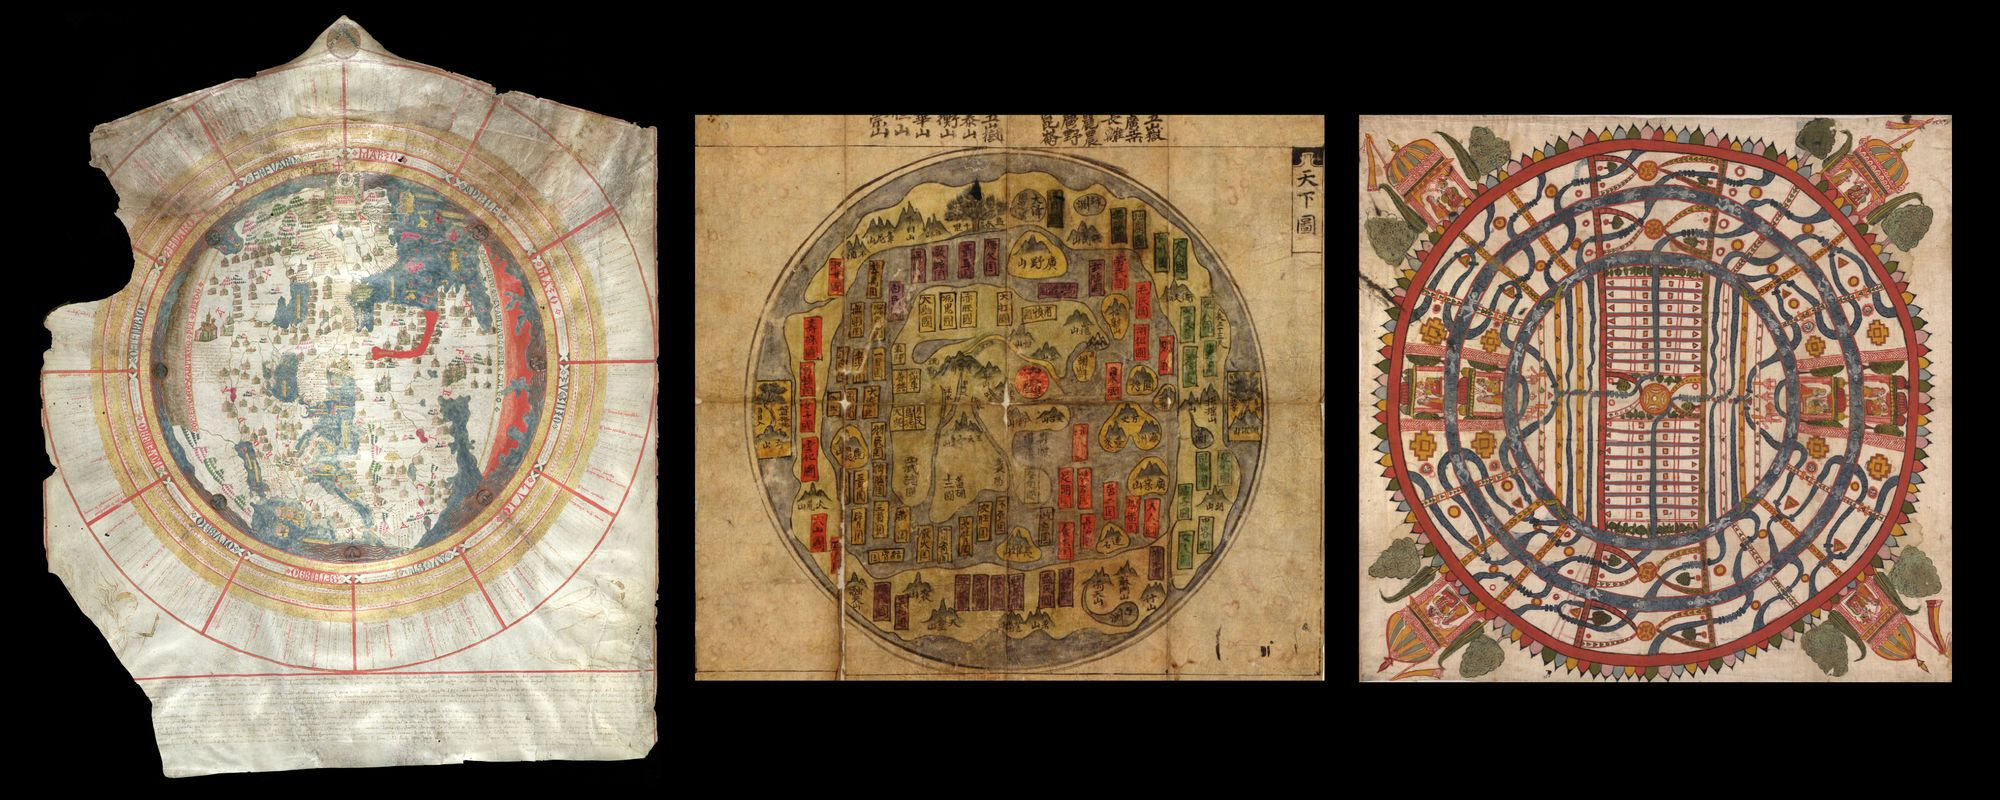 Left: A round map showing a lot of details. Cities and villages are illustrated with buildings. The map is framed by a calendar whose months are arranged radially around the card.  Middle: A circular map illustrated with mountains and trees. Right: A colorful circular map with a rectangular form in the middle and two ring-shaped forms on the outside. The map does not represent any geographical forms but is rather abstract.